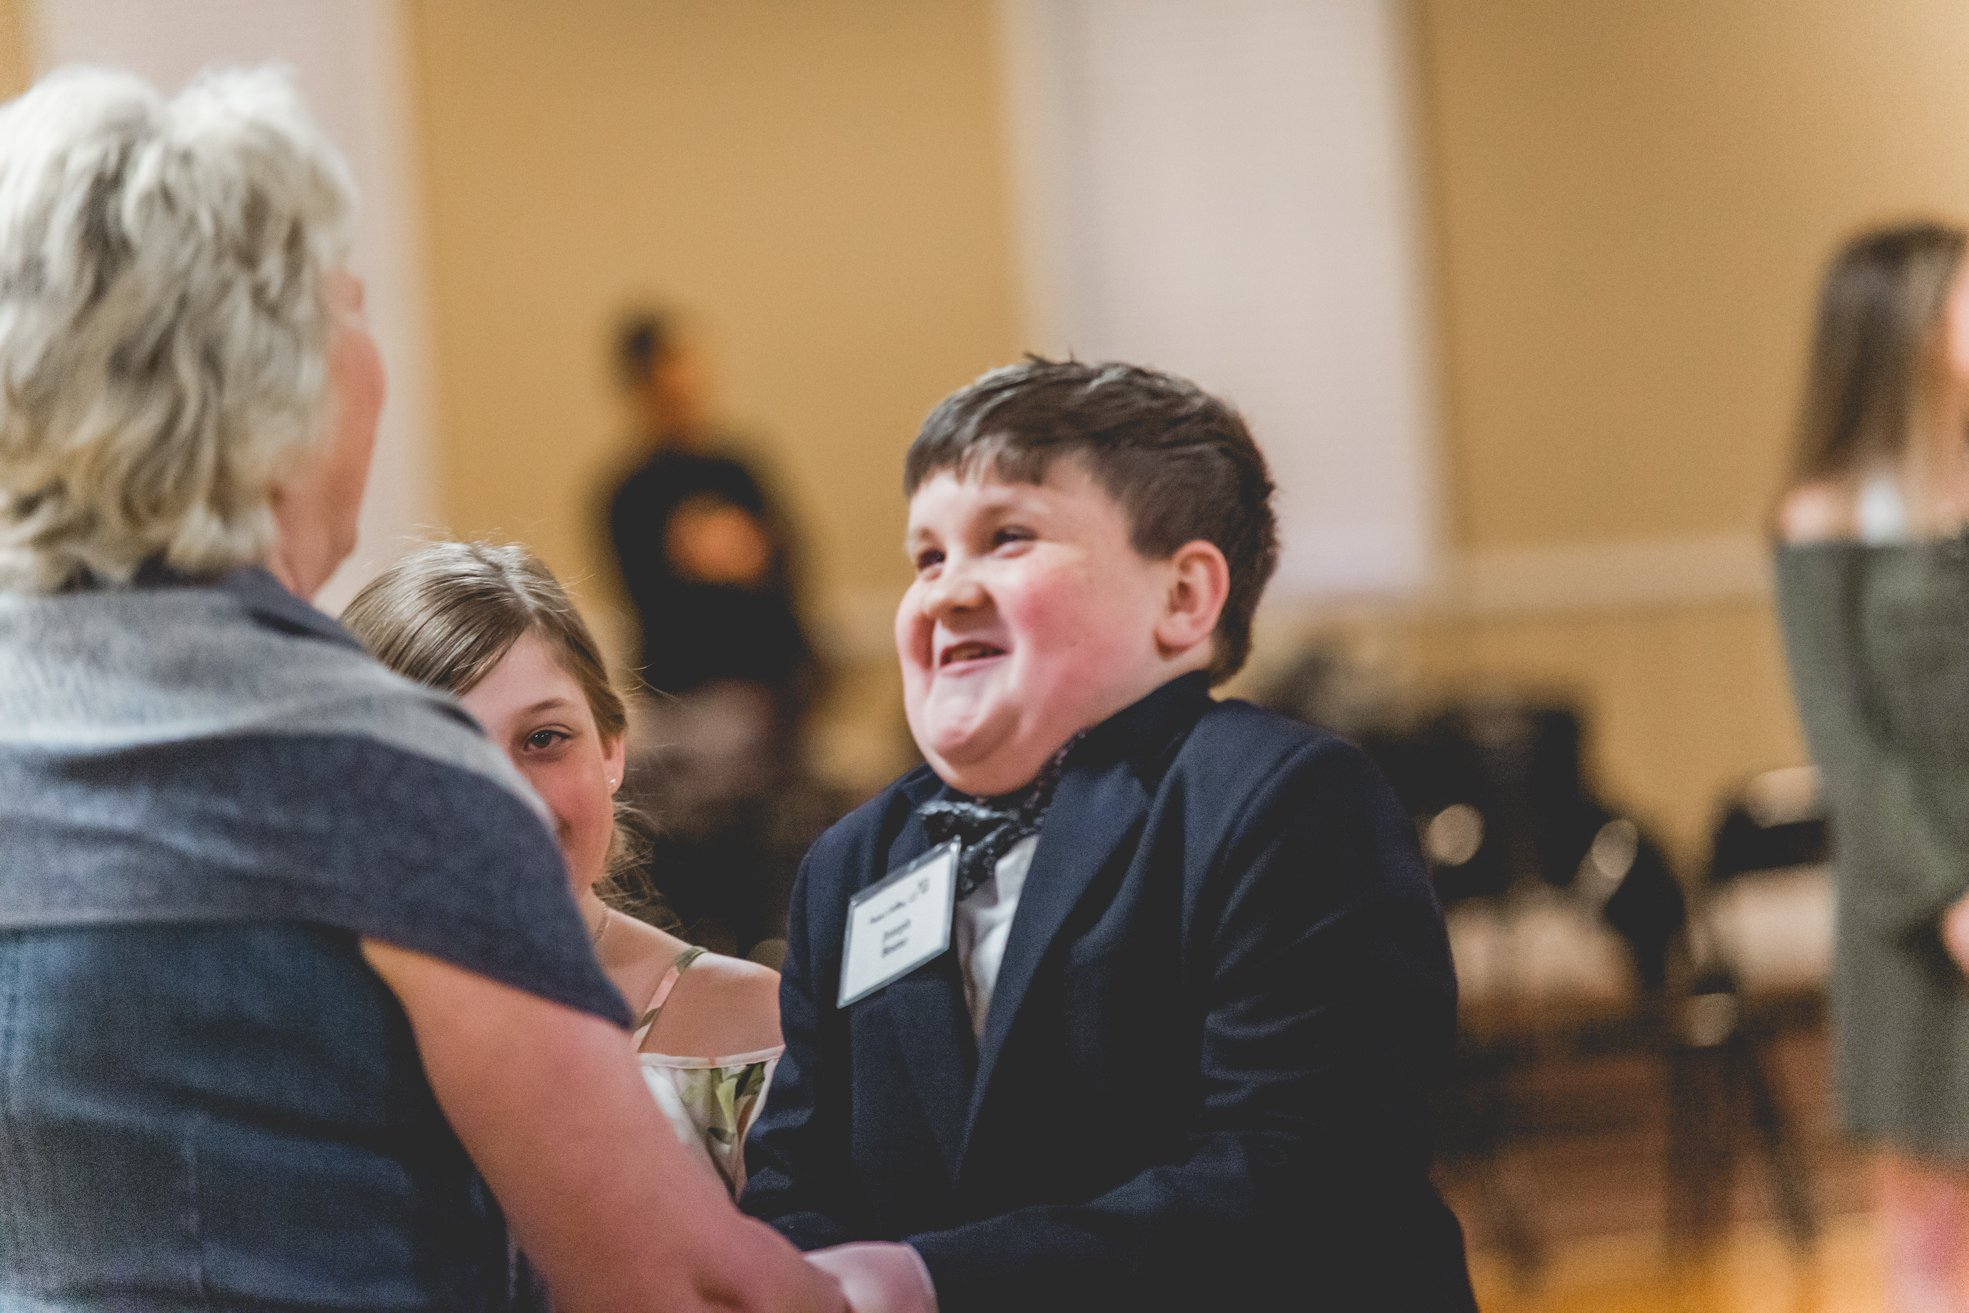 This young man makes everyone smile